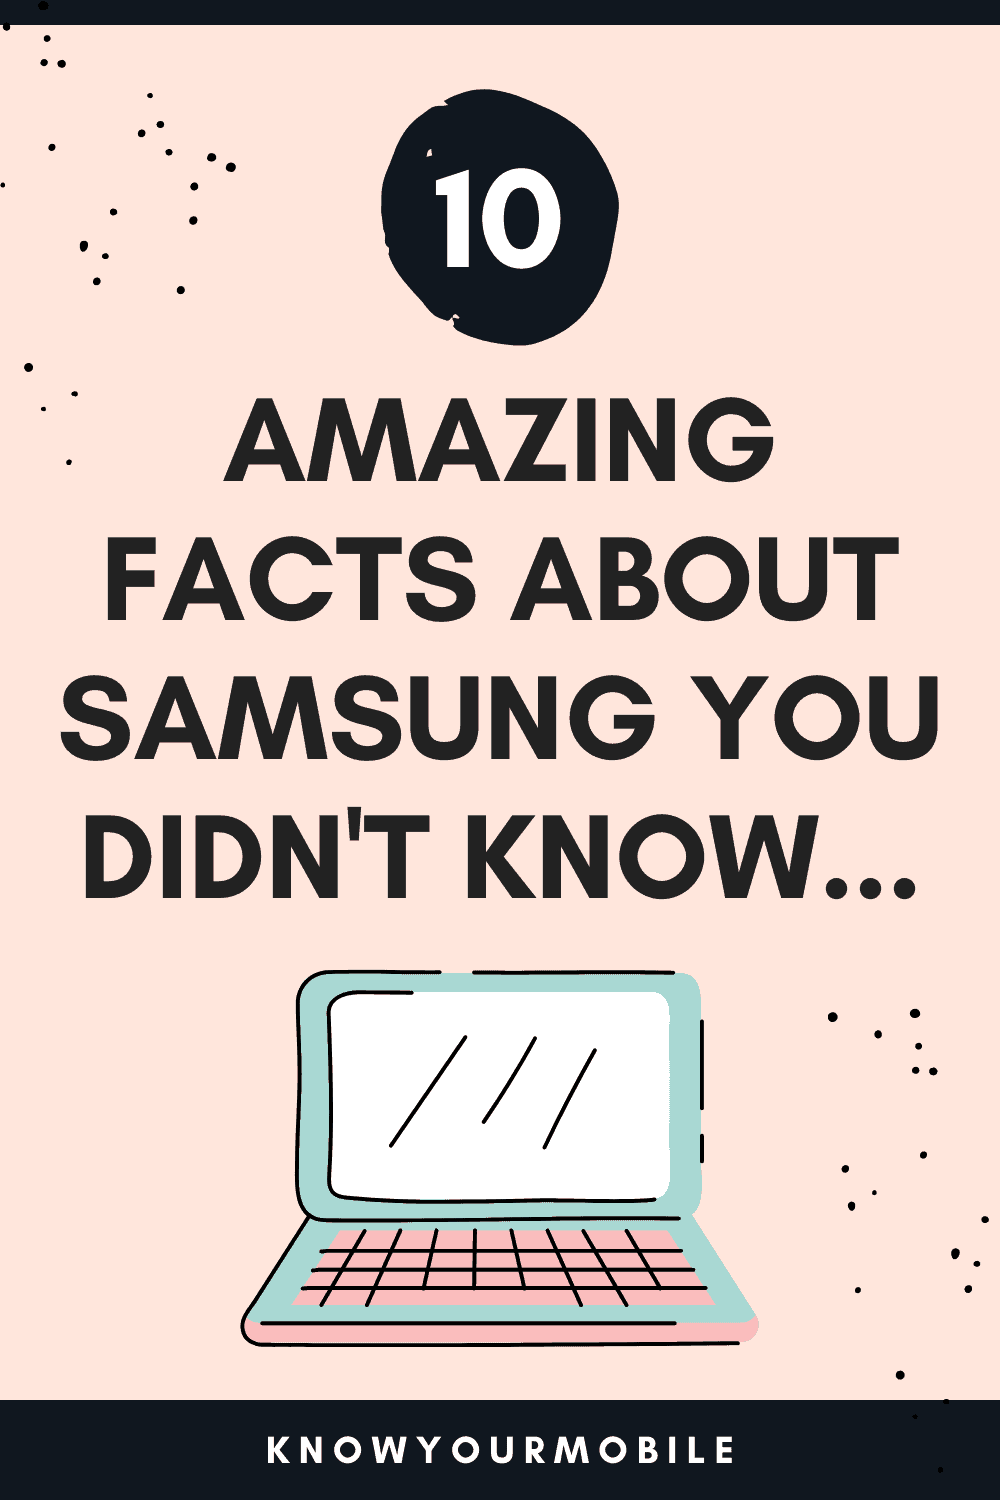 10 Things You 100% Did Not Know About Samsung